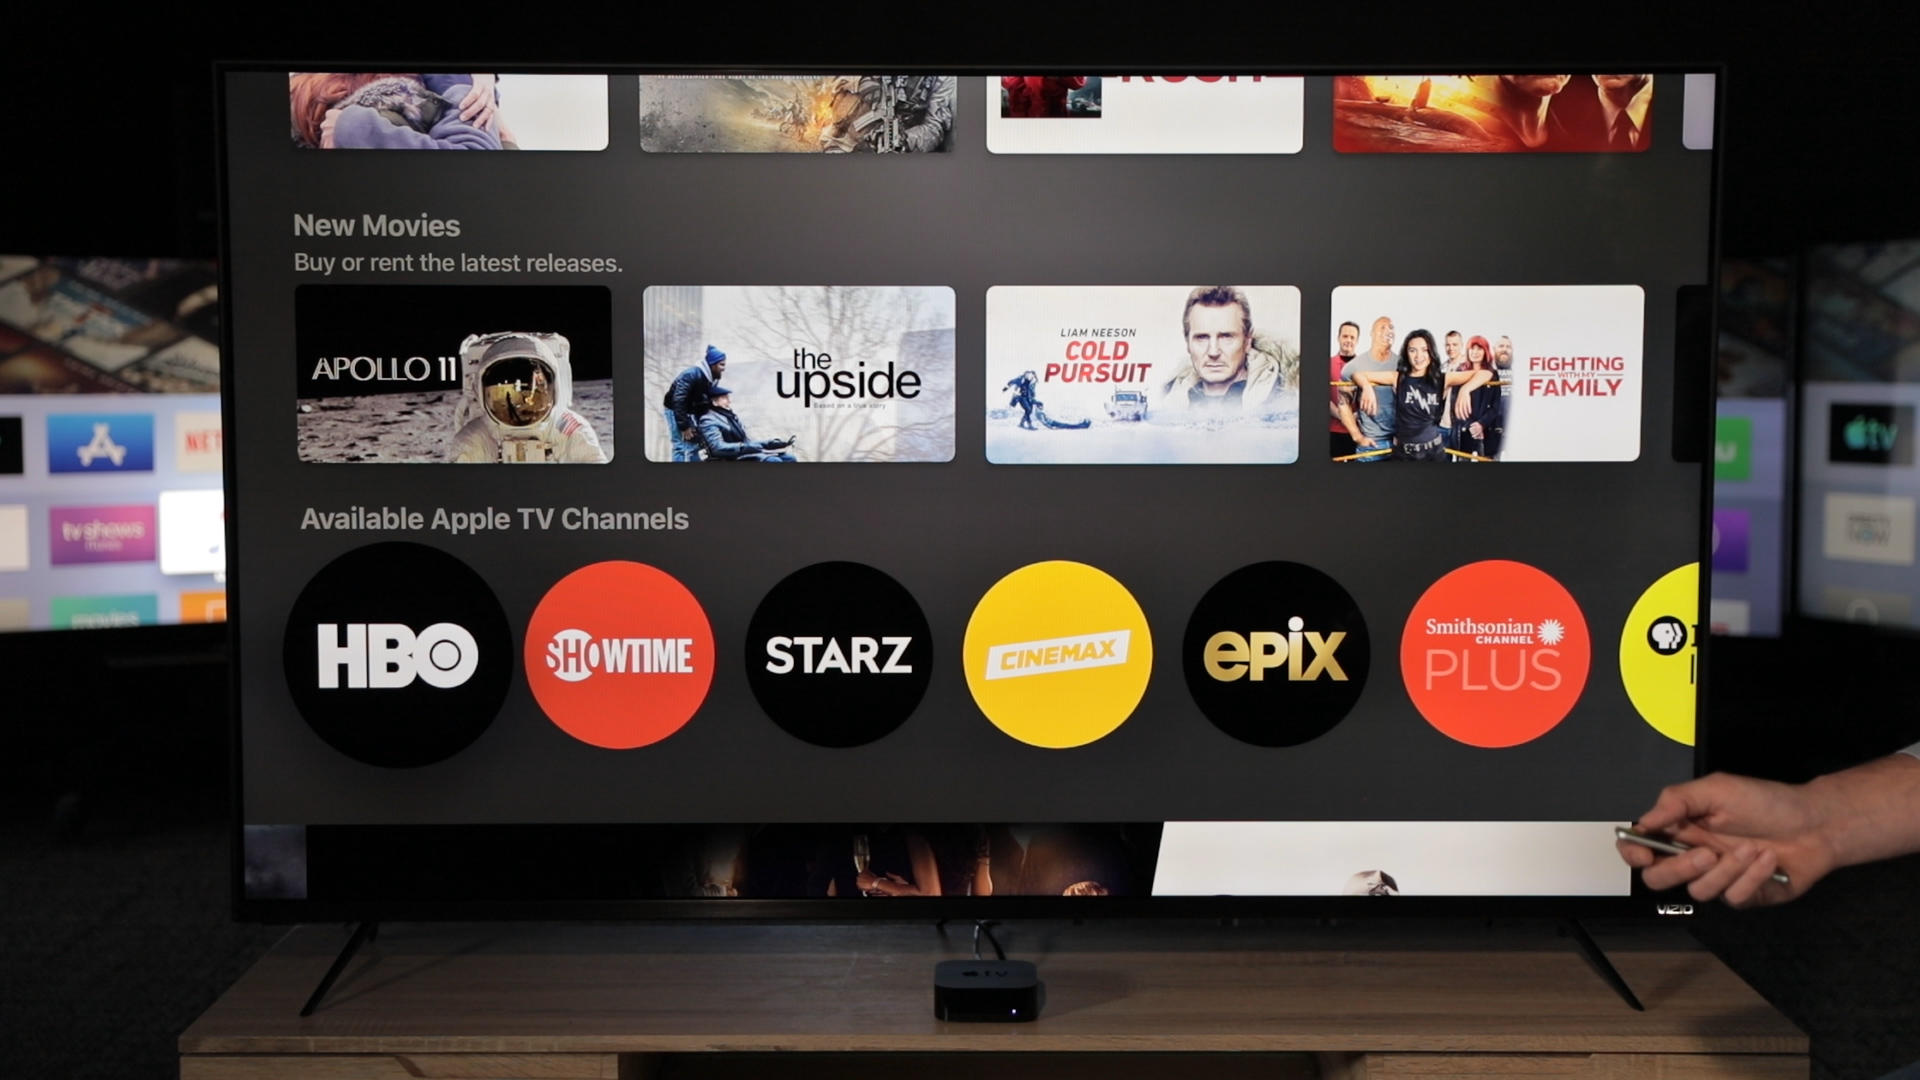 Video: Apple TV app 2019: Everything you need to know